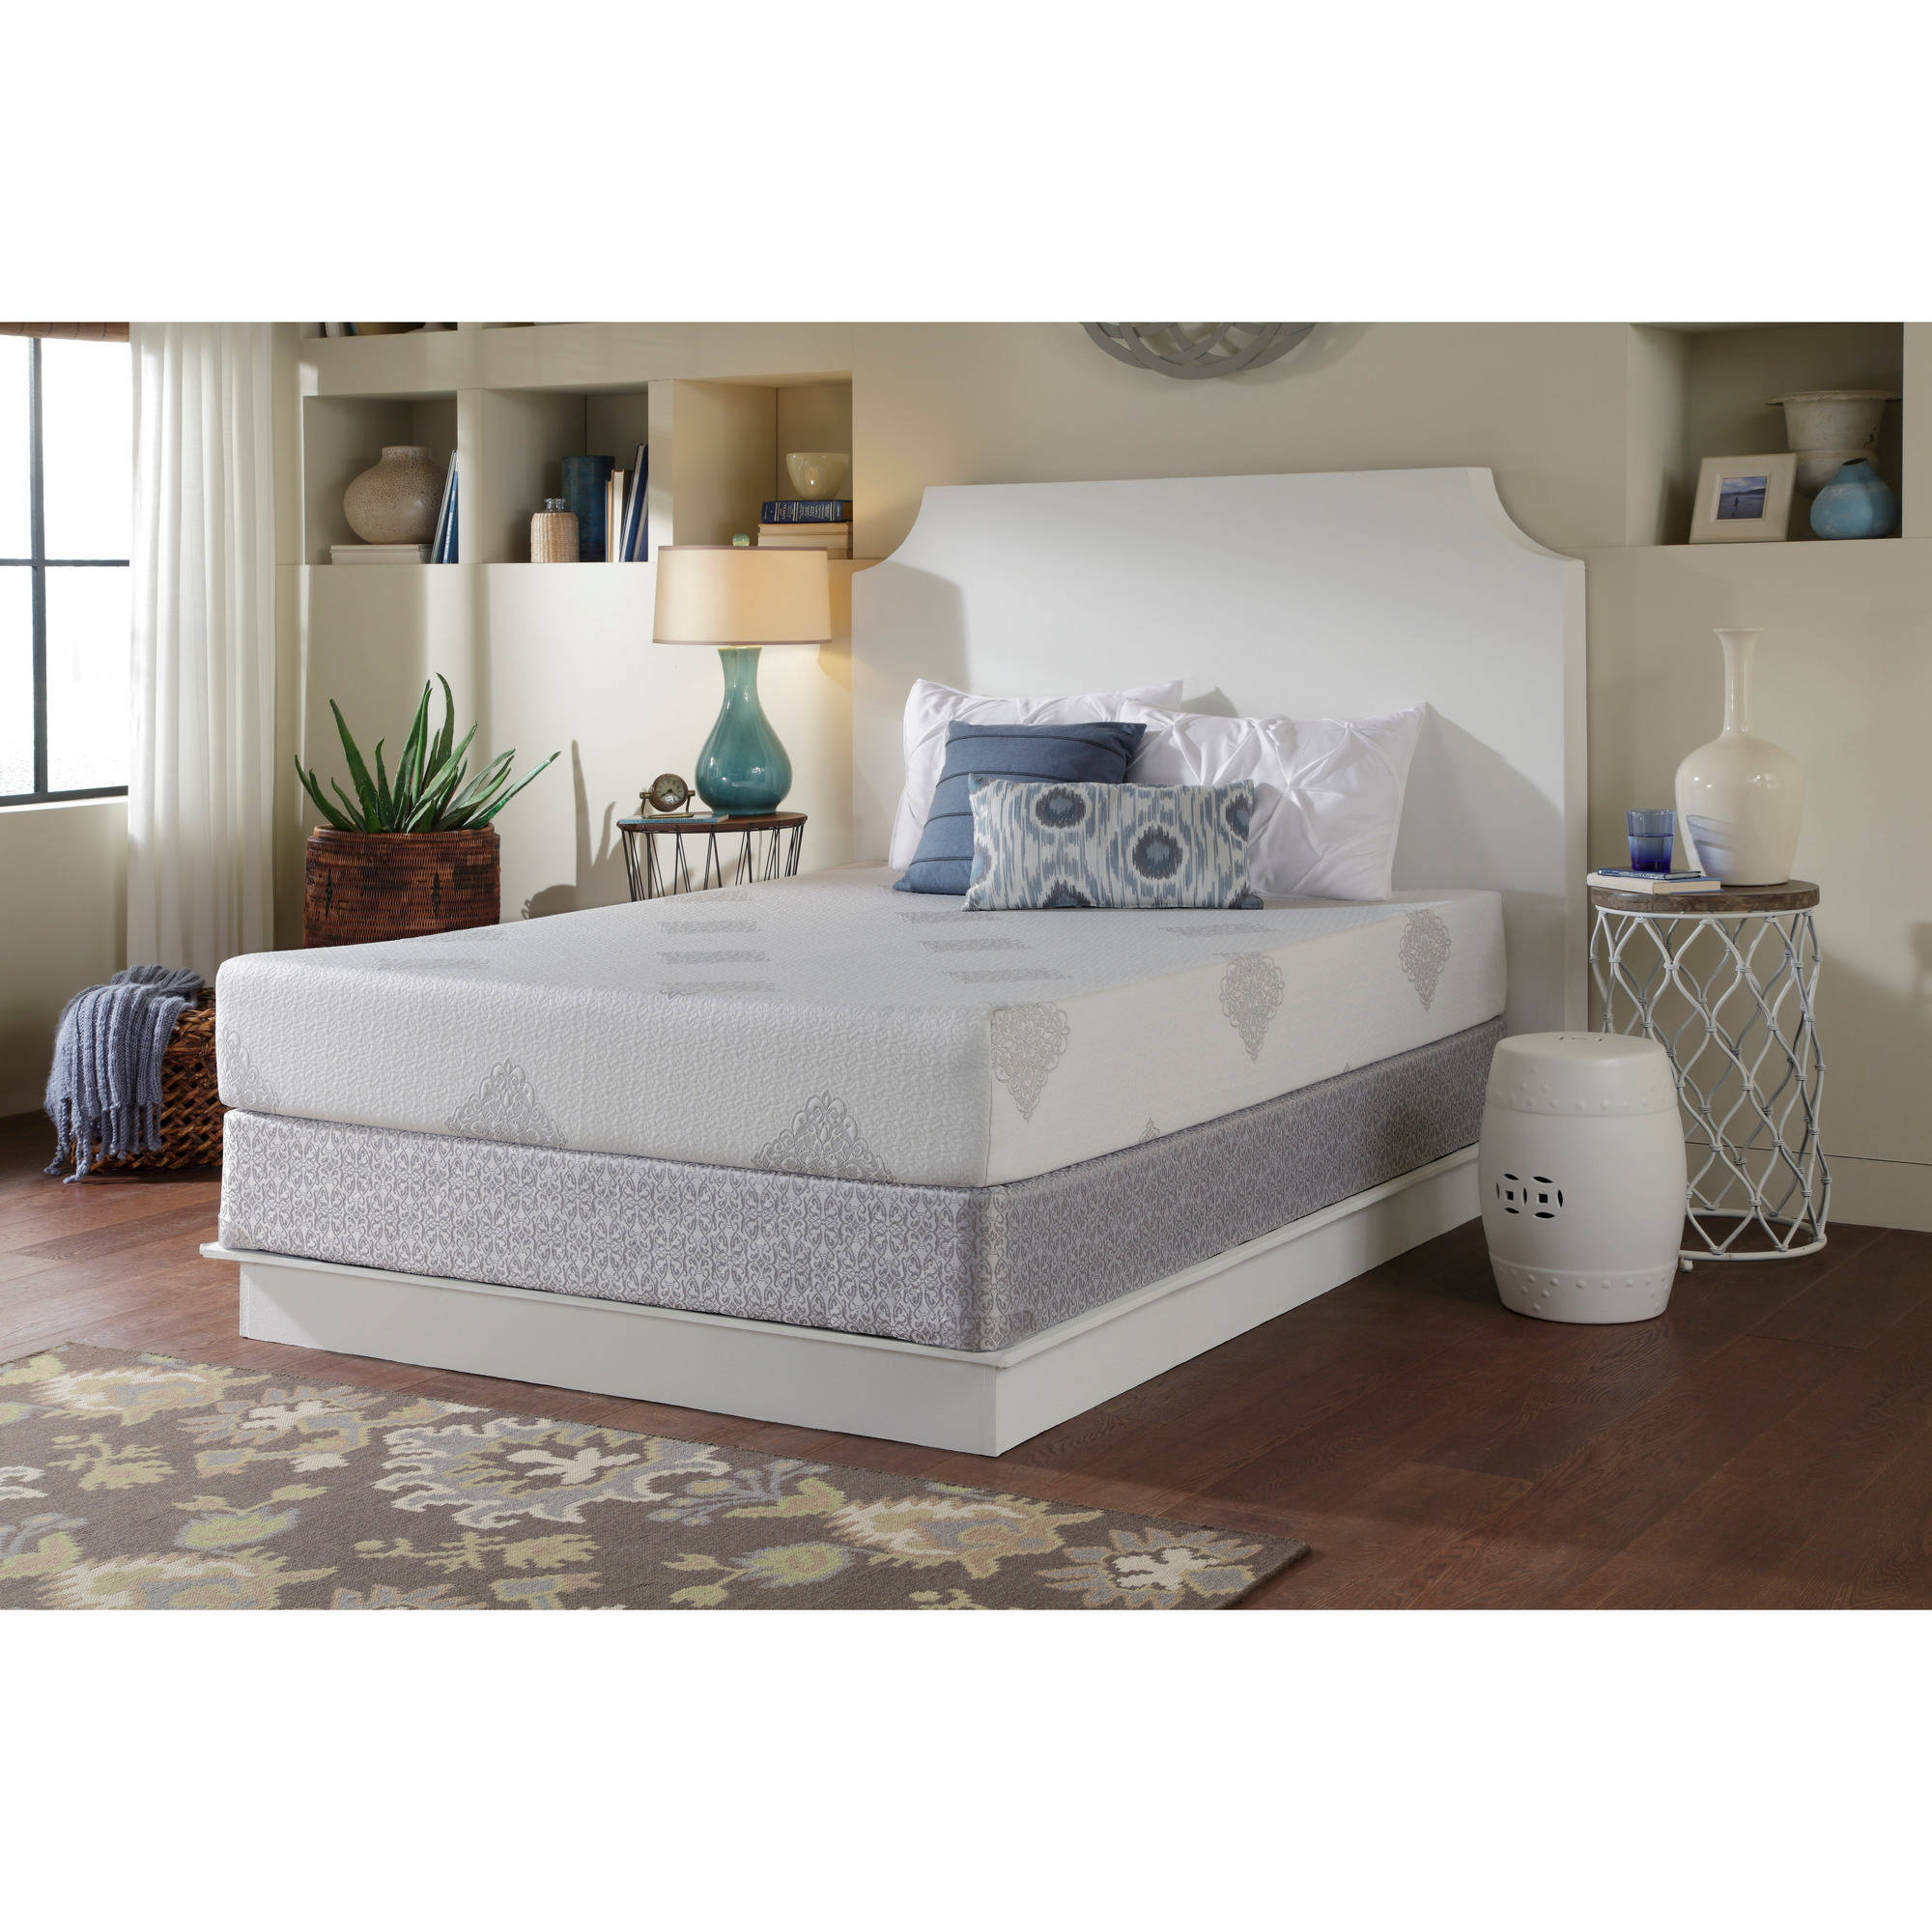 Sealy Mattresses Benefits Of Sealy Mattresses Sealy Hybrid Cobalt Firm Queen Mattress 1